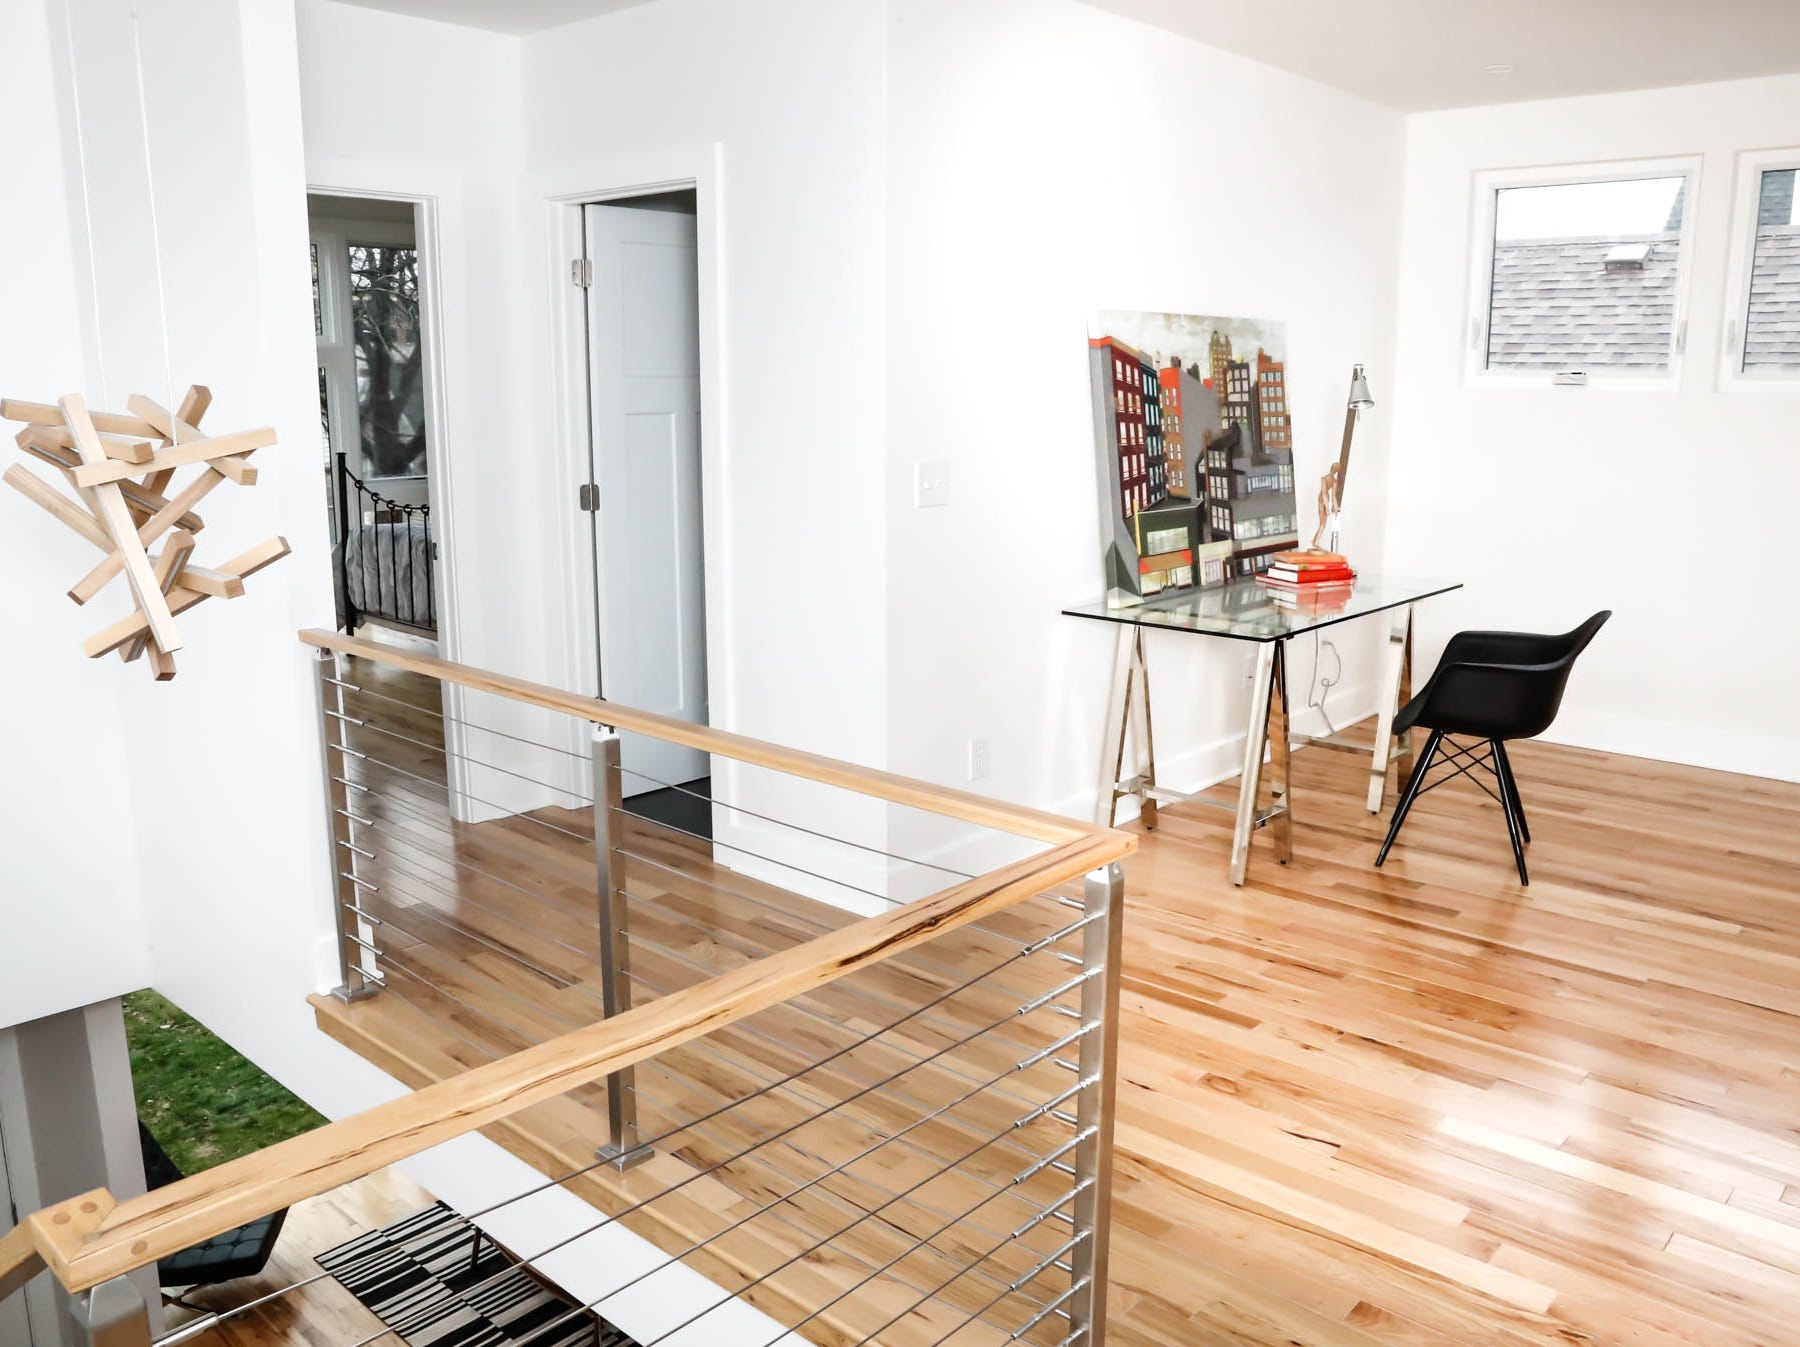 A second-floor landing features a space for a home office inside a newly built modern architectural home up for sale at 1134 Woodlawn Ave., Indianapolis, Ind., 46203, in the heart of the historic Fountain Square neighborhood on Wednesday, January 23, 2019. The three-story home, which features 2,030-square-feet and an open space concept tile and hardwood floors are priced at $479,900.